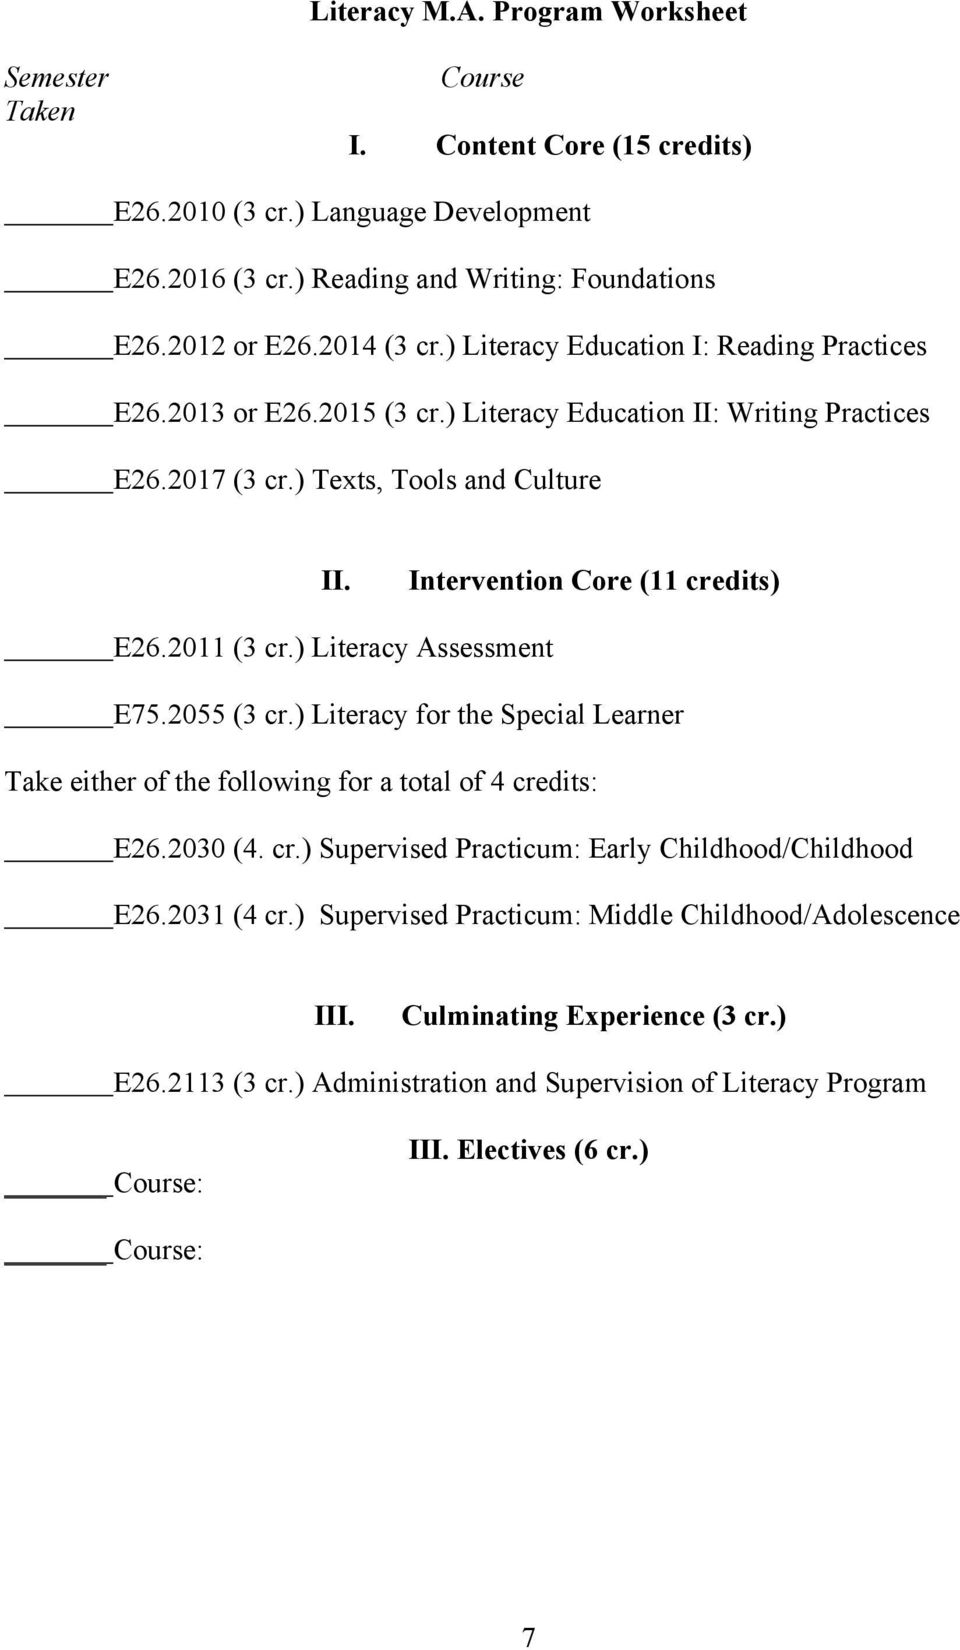 2011 (3 cr.) Literacy Assessment E75.2055 (3 cr.) Literacy for the Special Learner Take either of the following for a total of 4 credits: E26.2030 (4. cr.) Supervised Practicum: Early Childhood/Childhood E26.